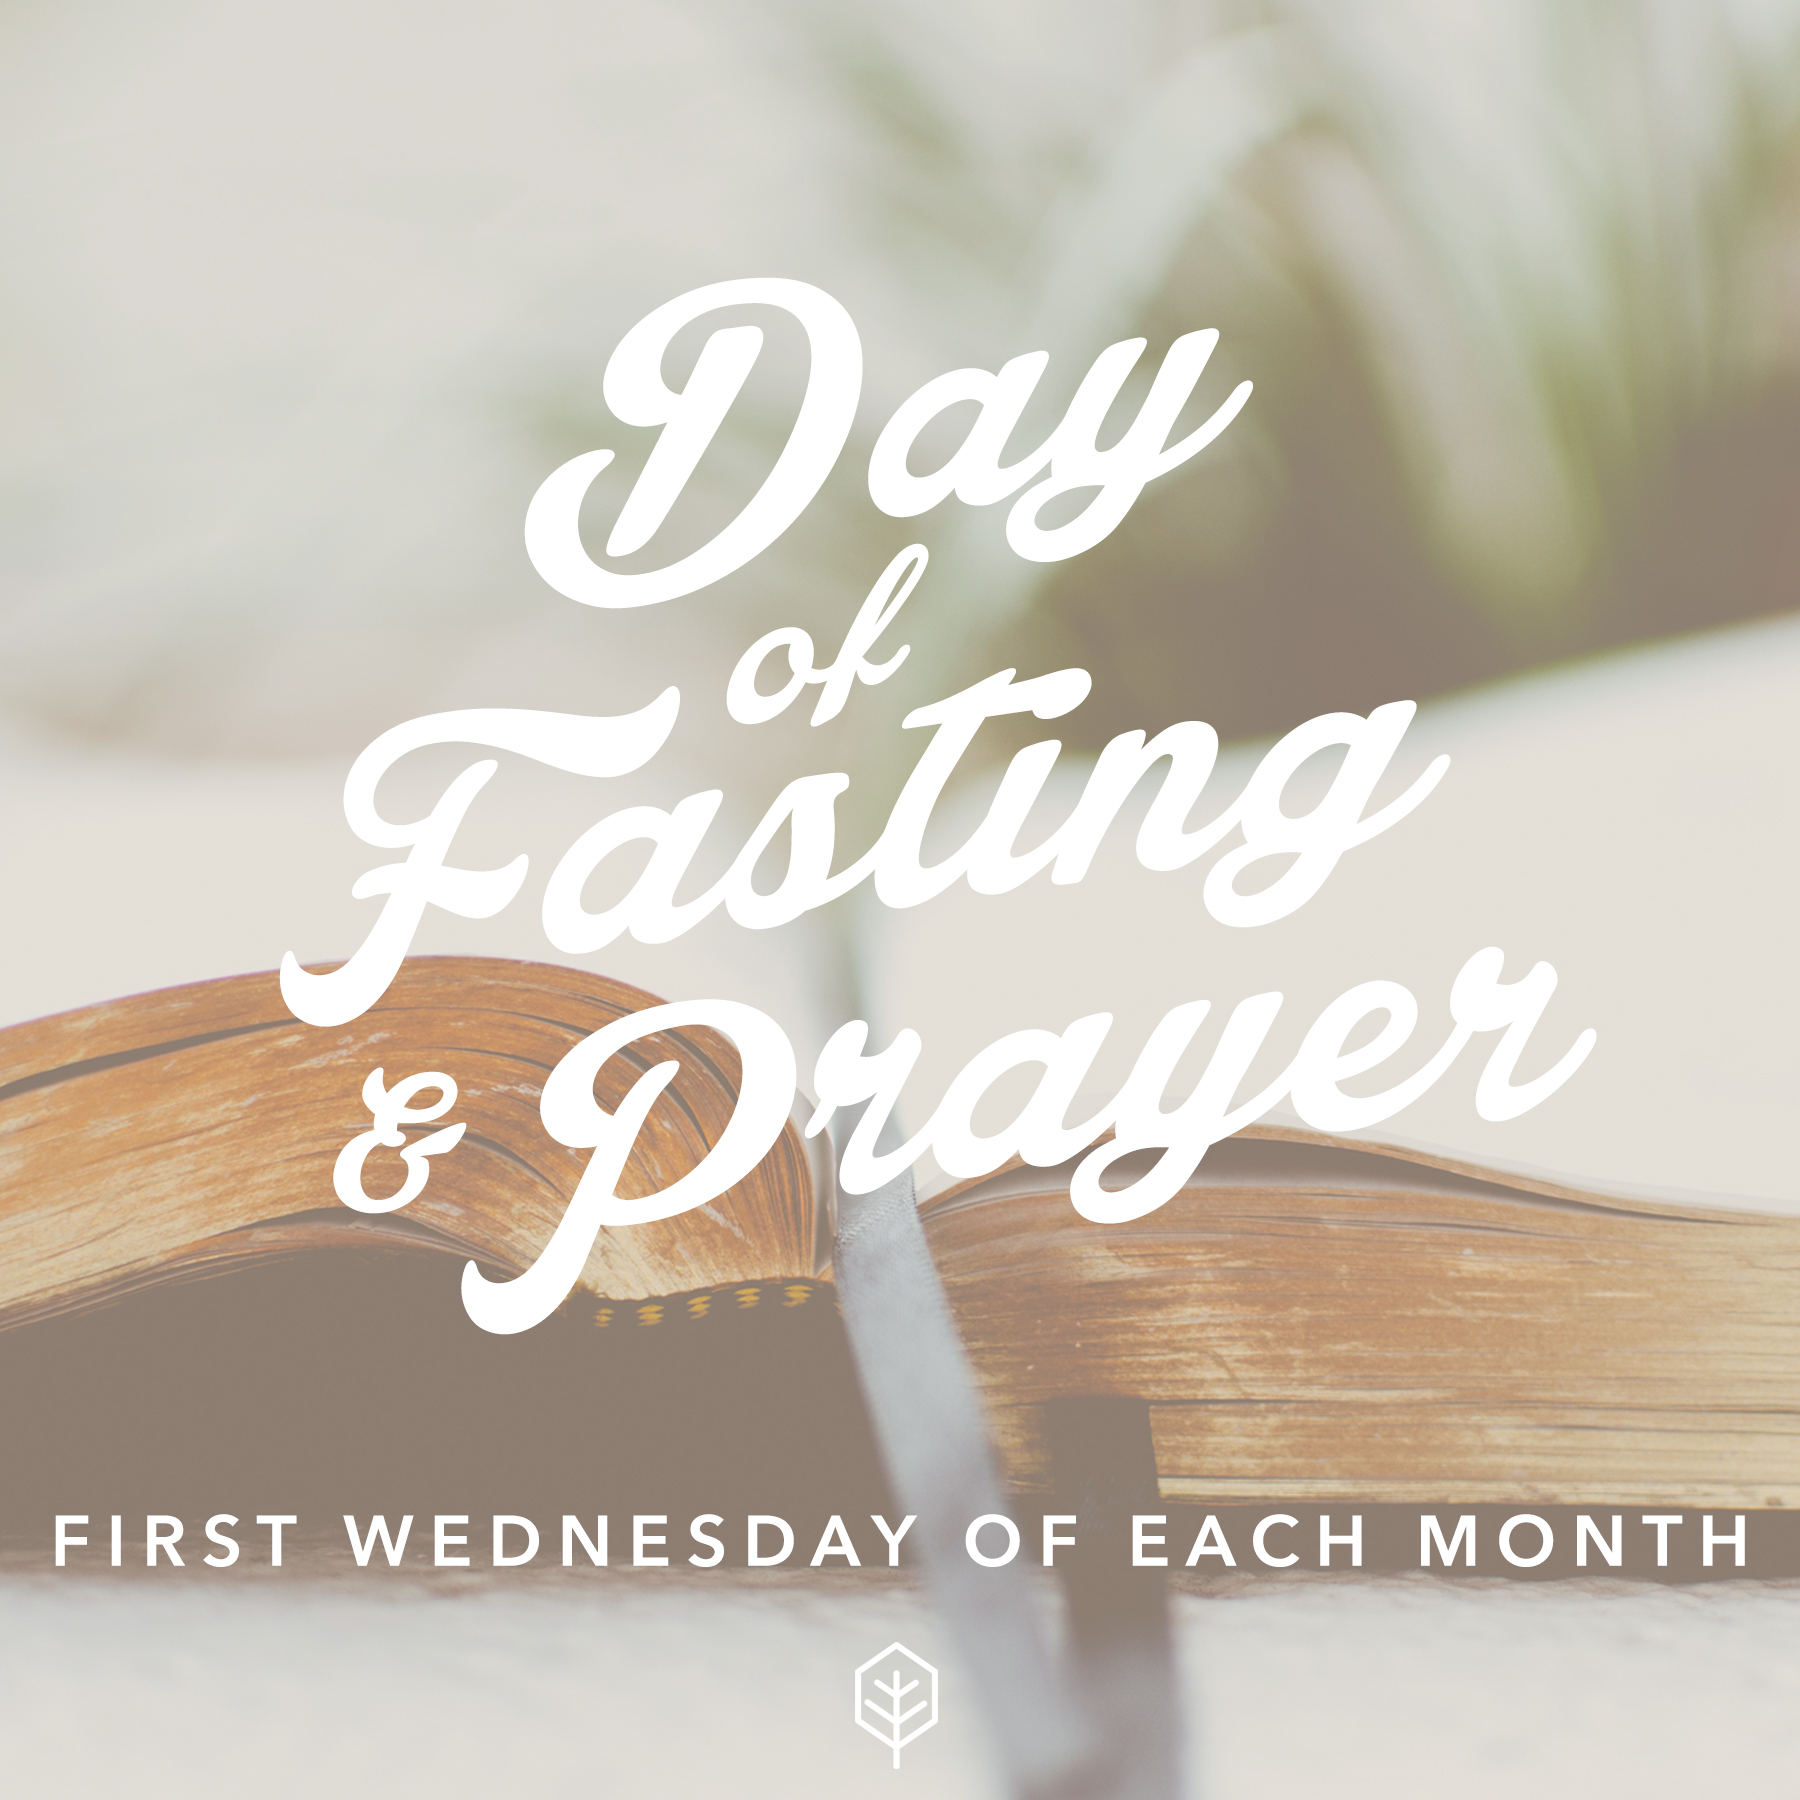 Day of Fasting + Prayer.jpg